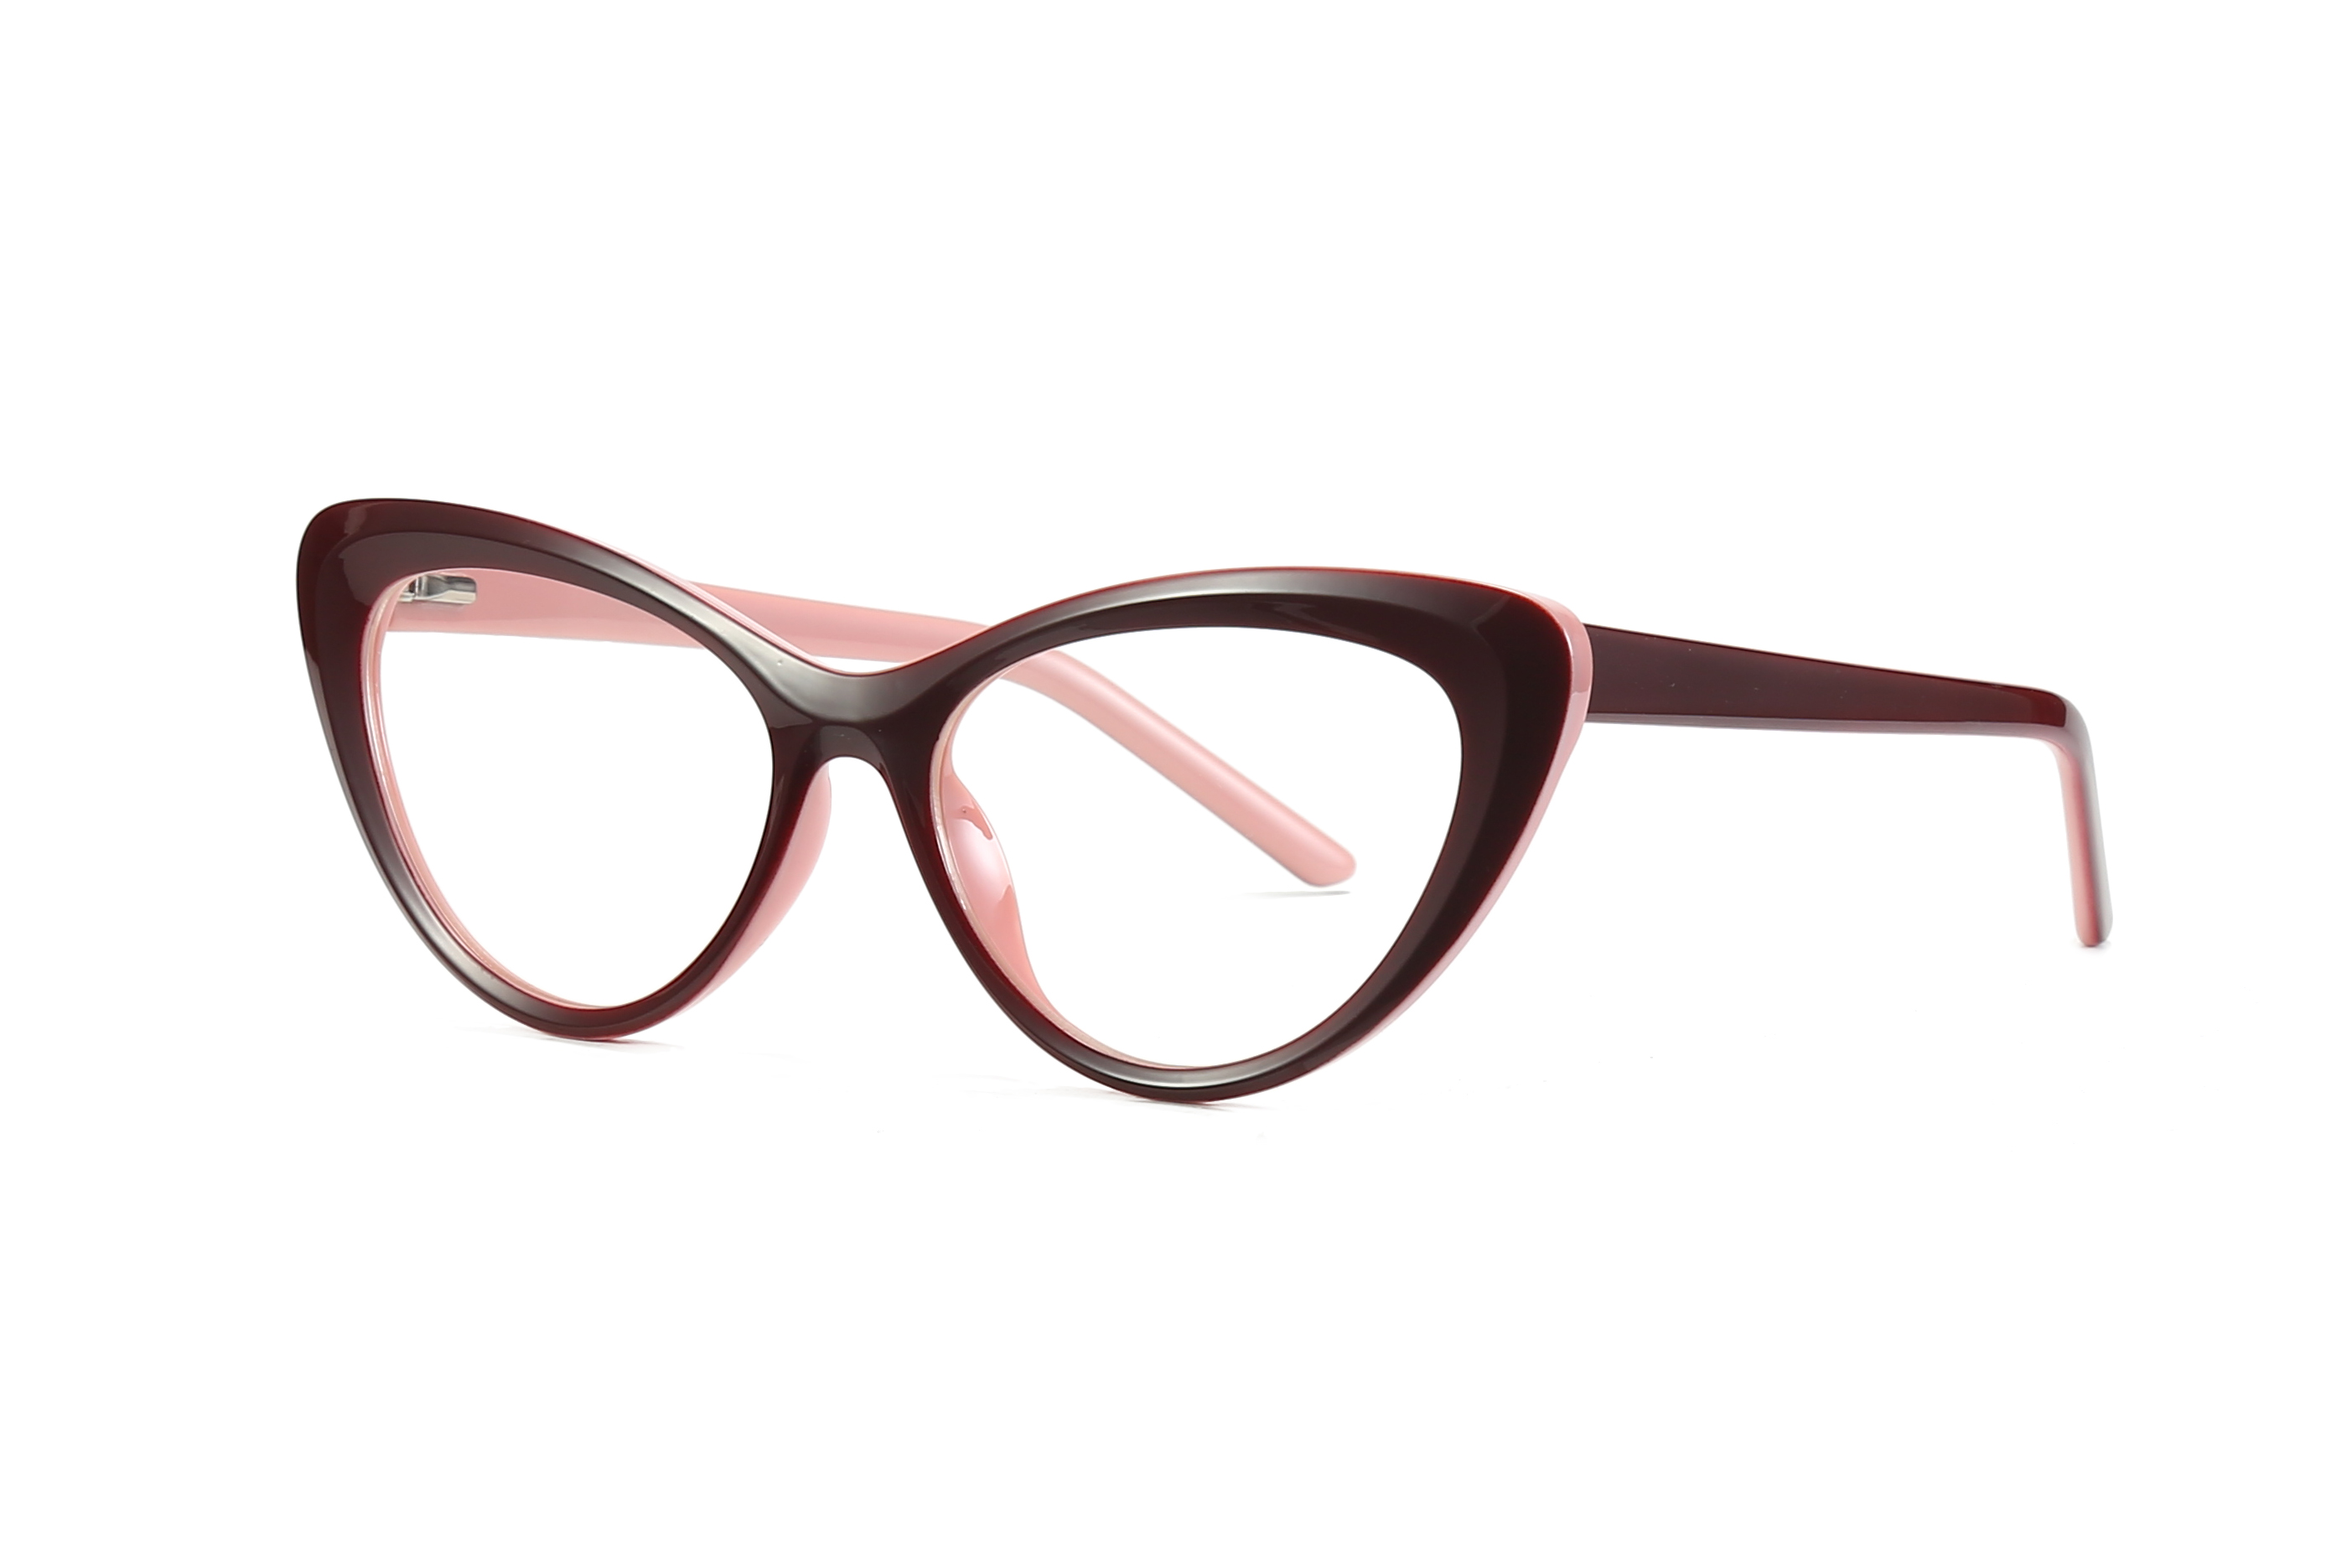 eyeglasses frames for women